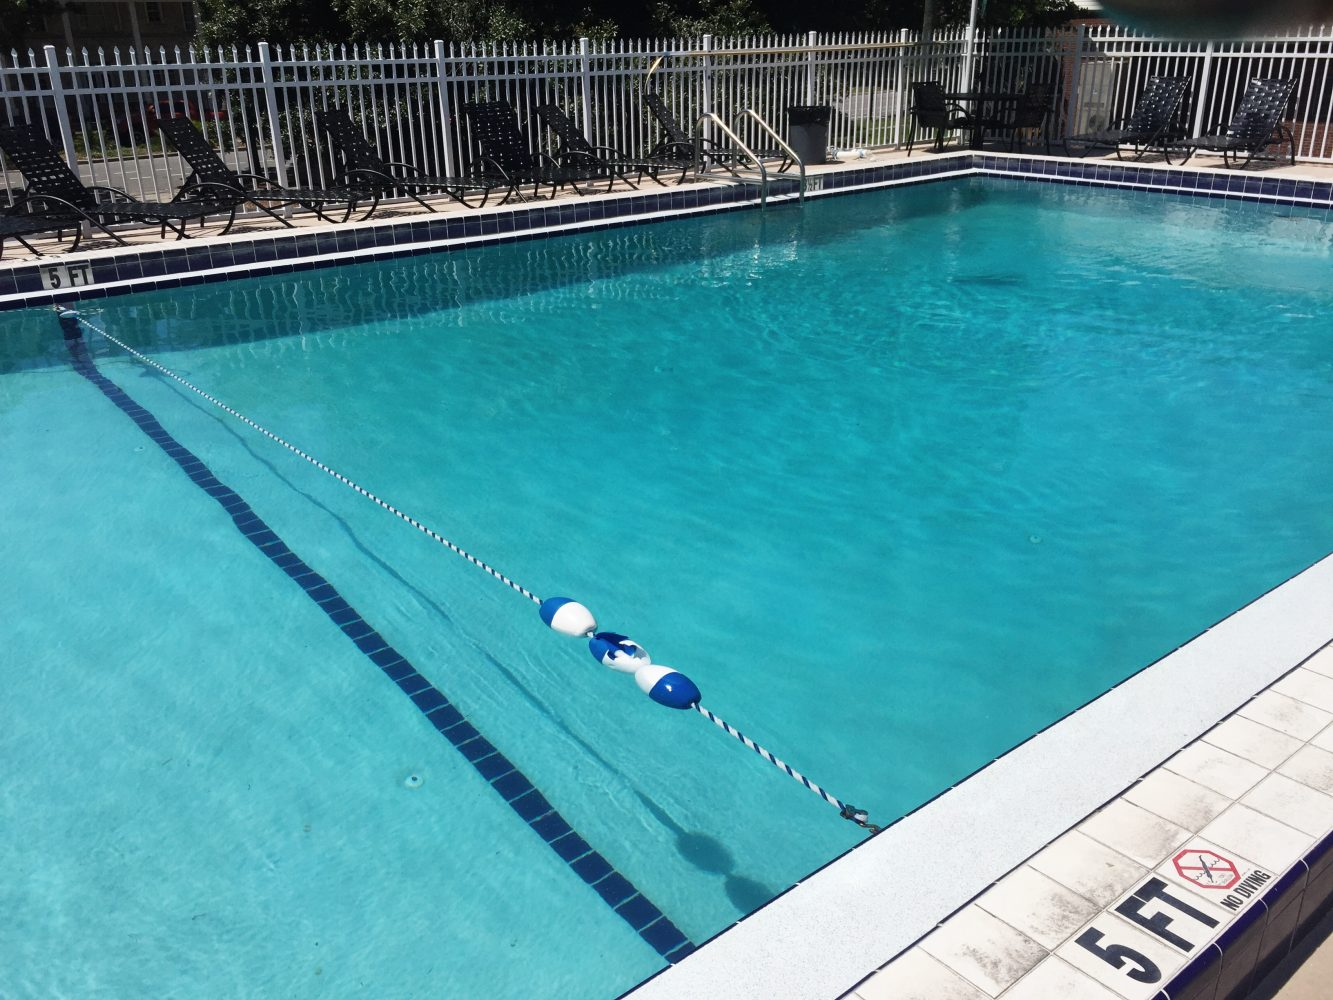 Cdc Warns Swimmers To Take Precautions Before Jumping In Wuft News